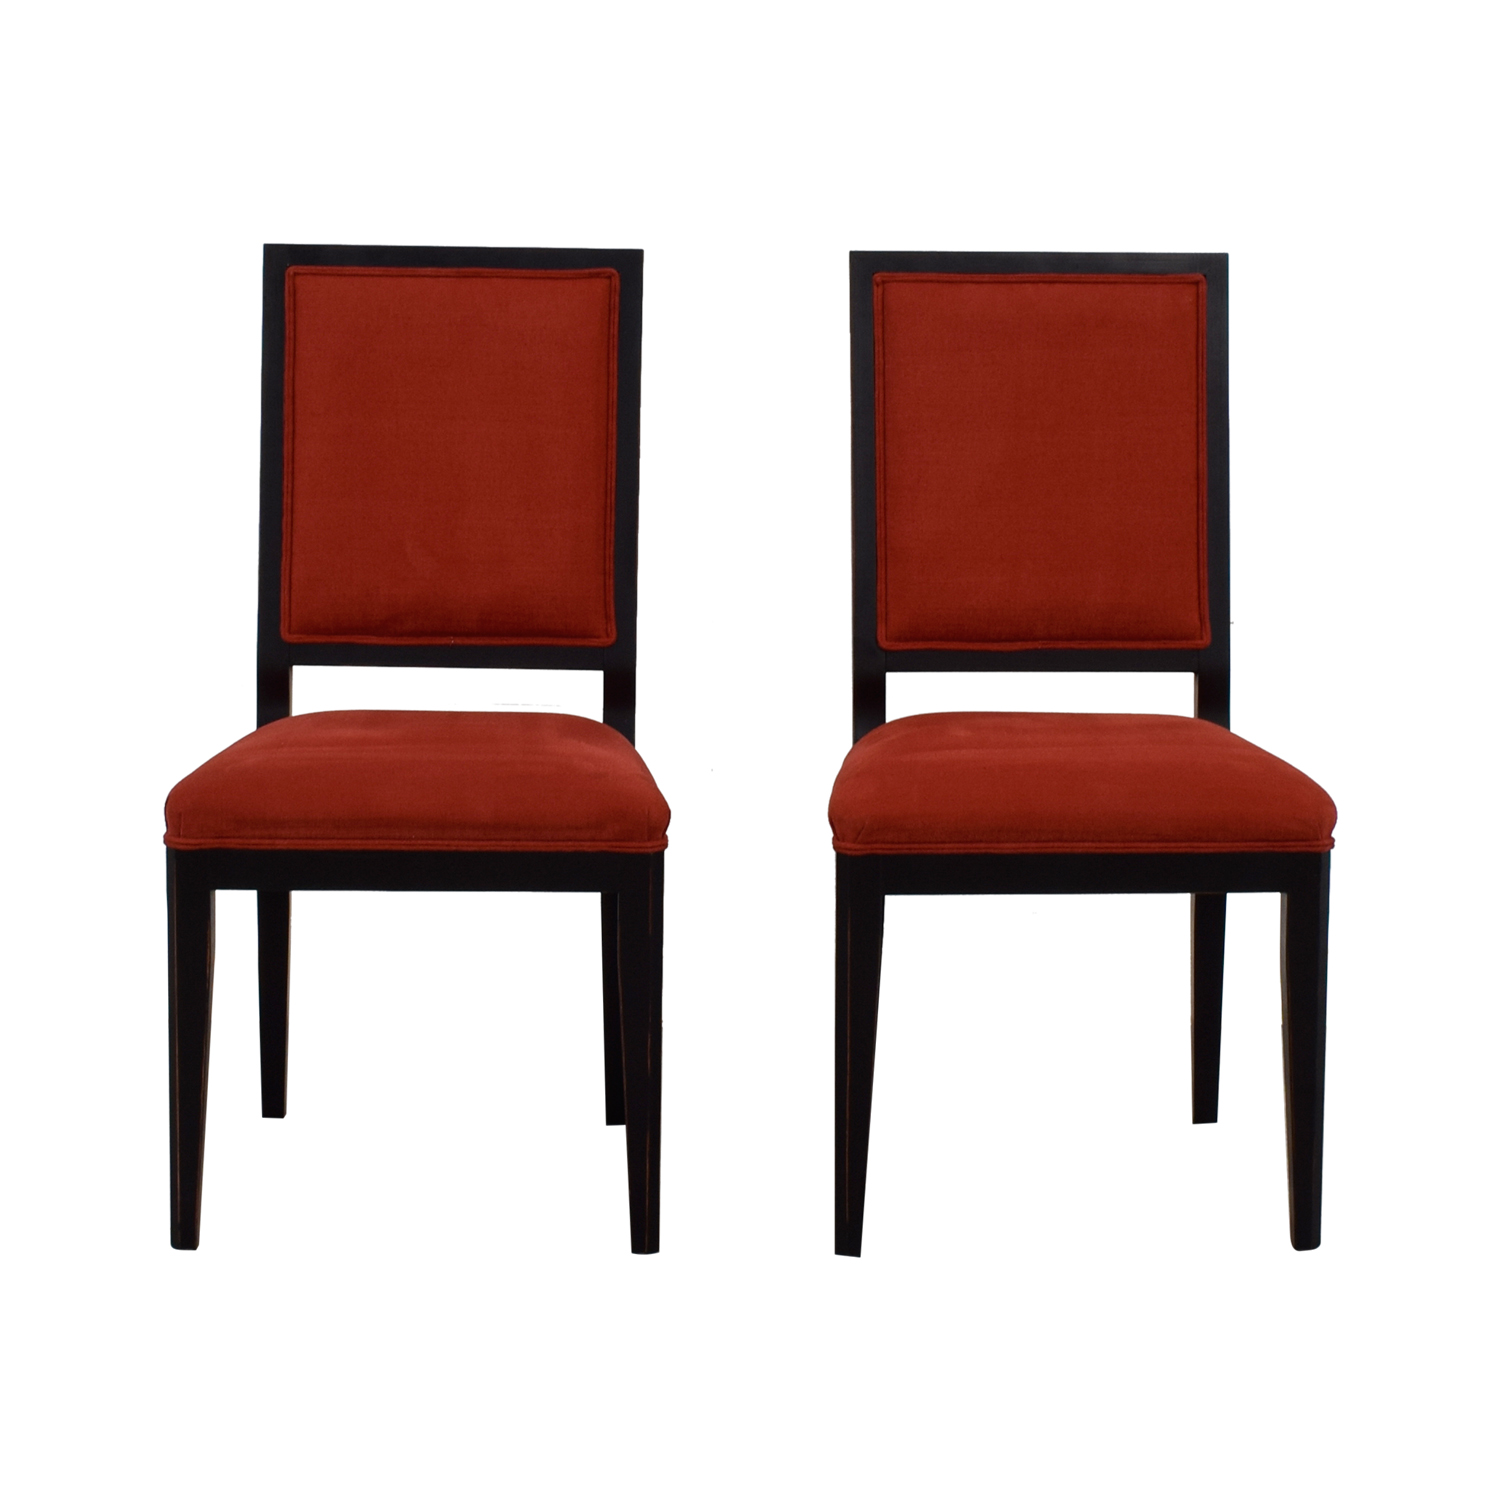 Red Upholstered Dining Chairs 90 Off Buying Design Buying And Design Red Upholstered Dining